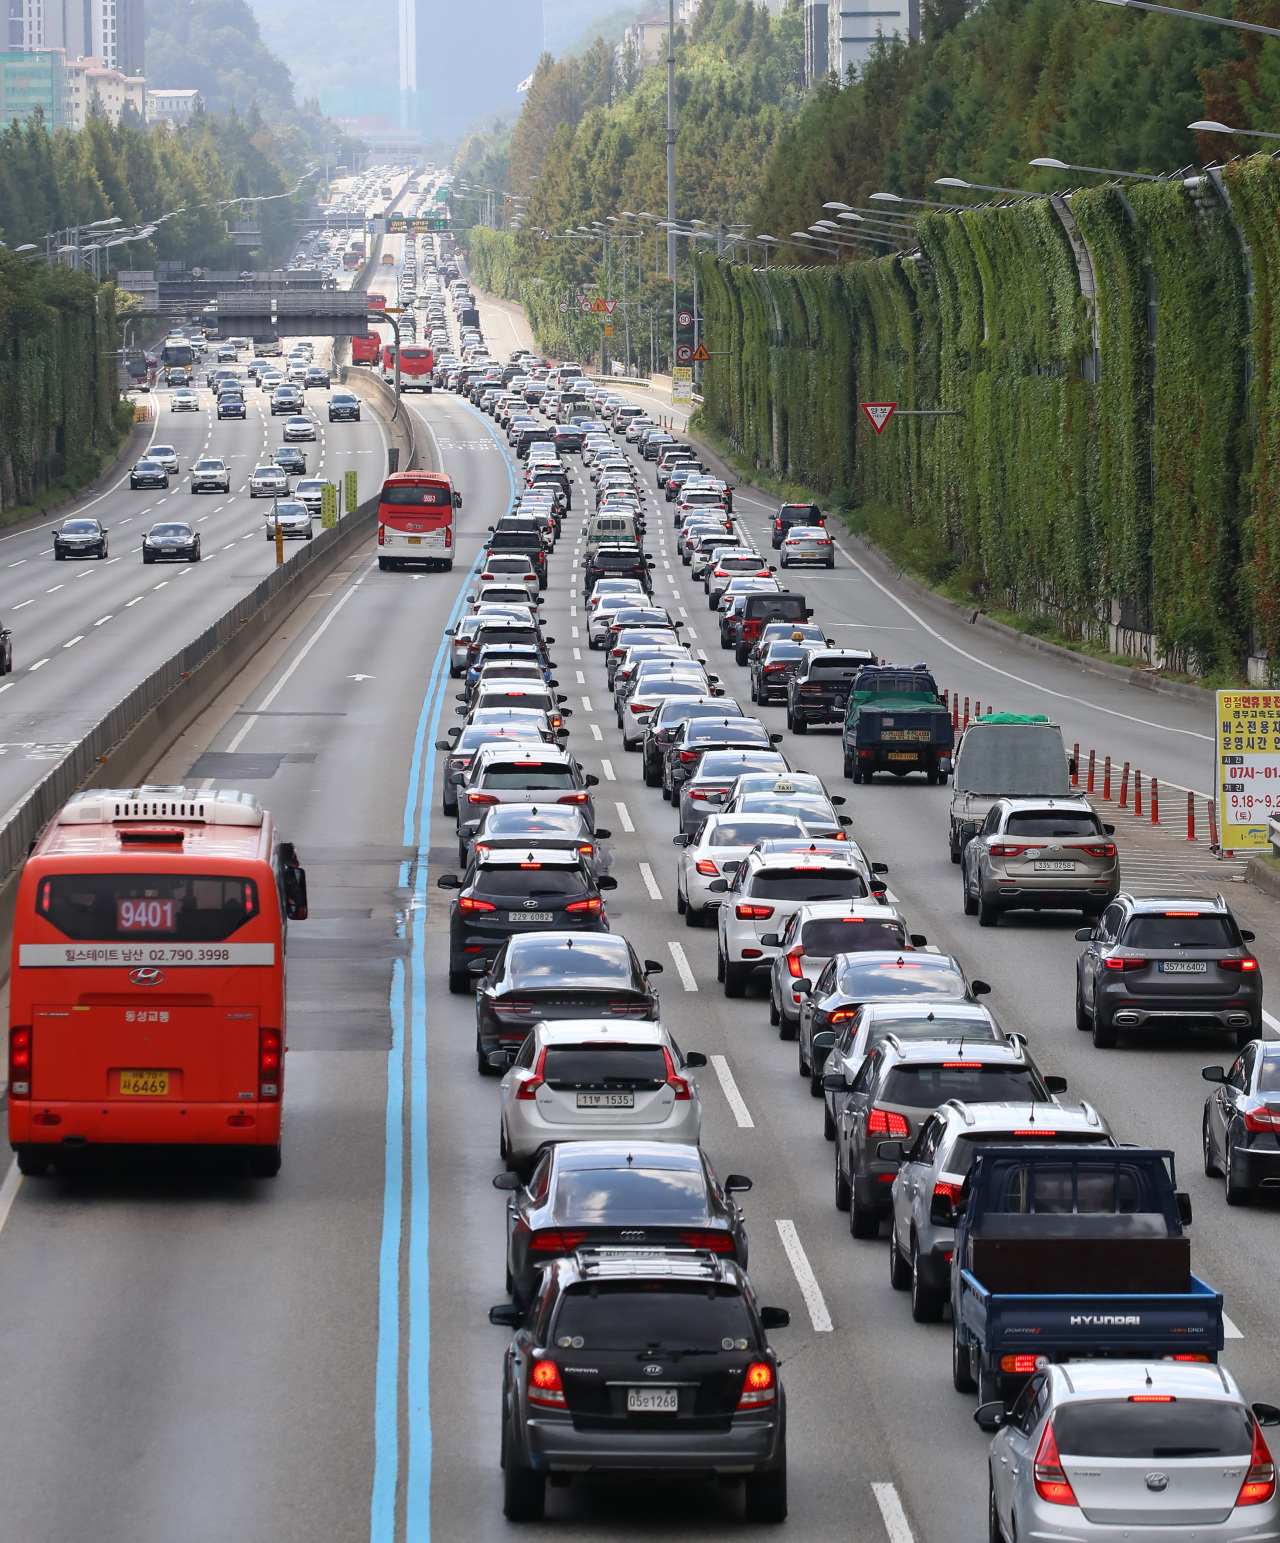 A major highway in southern Seoul is jammed with vehicles returning from hometowns on Wednesday, the last day of the Chuseok harvest holiday. (Yonhap)